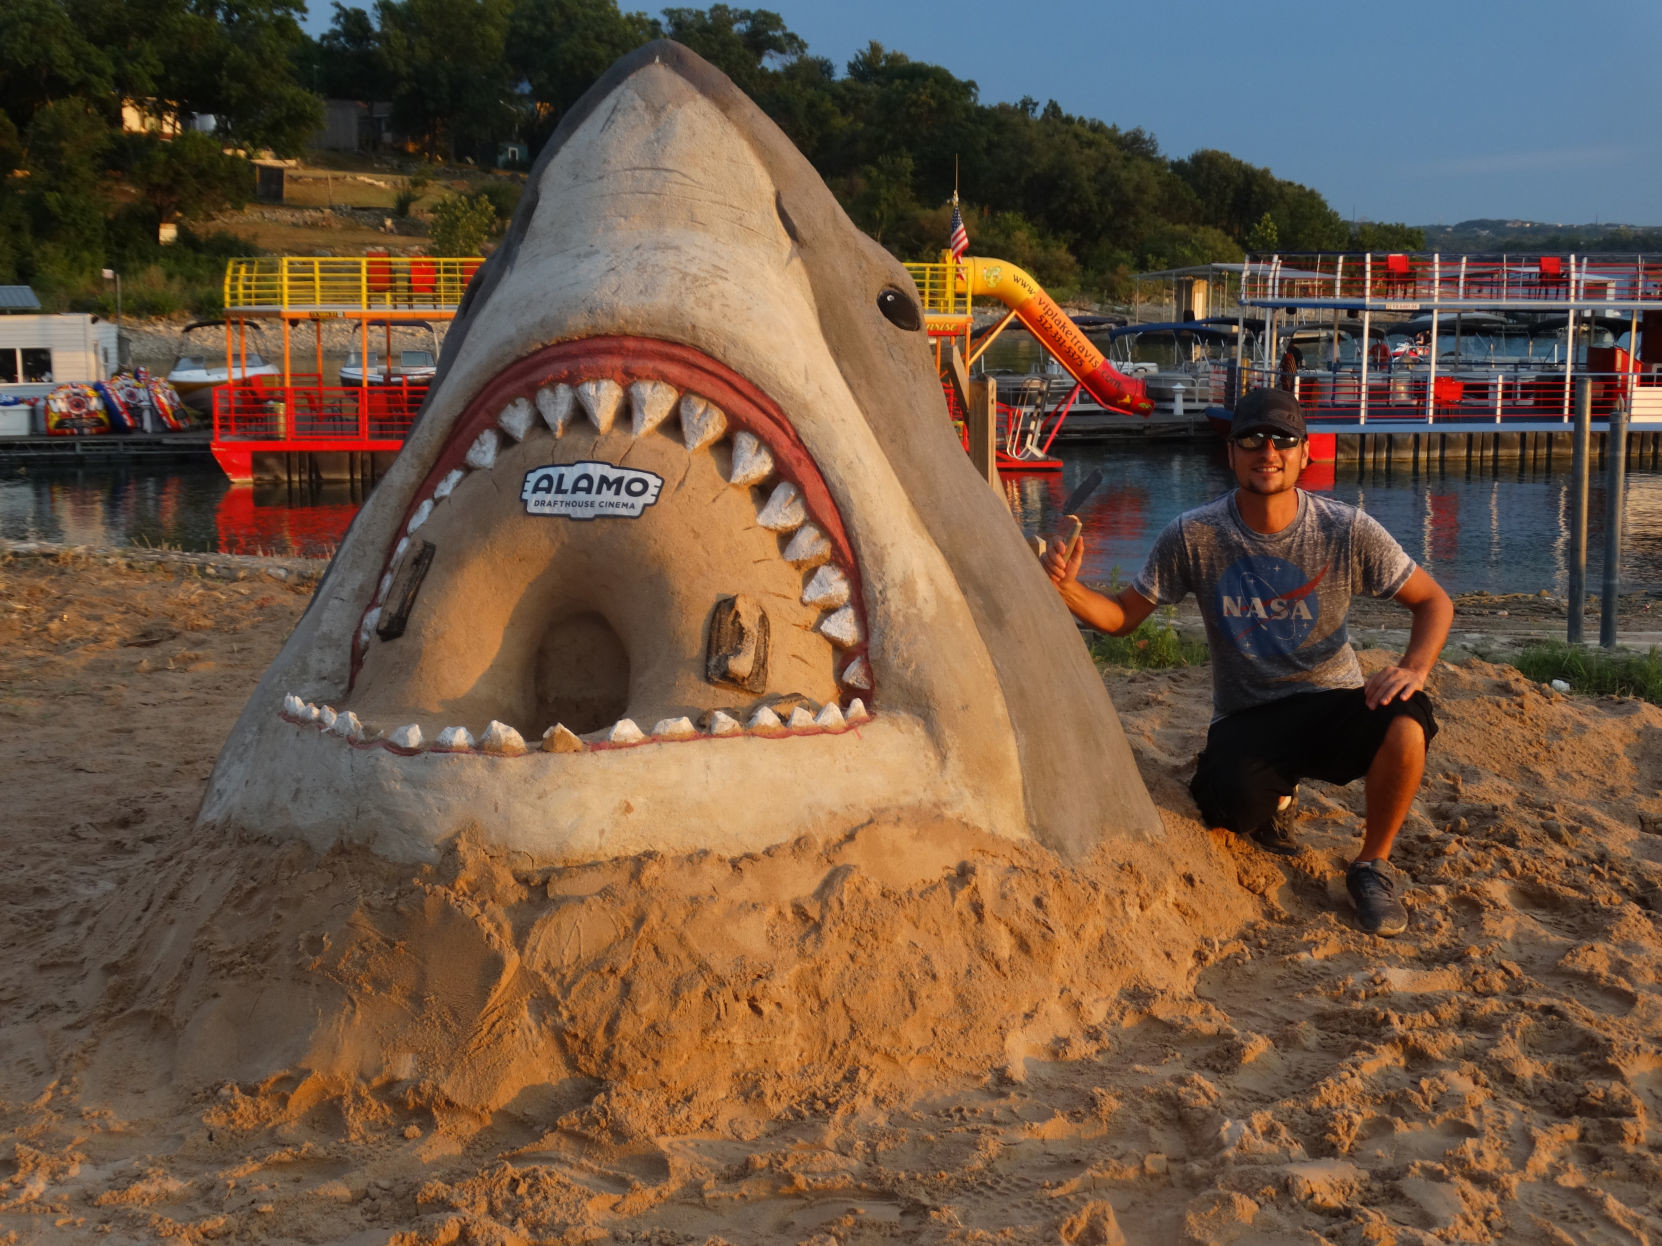 Joaquin Cortez, next to his JAWS sand sculpture.